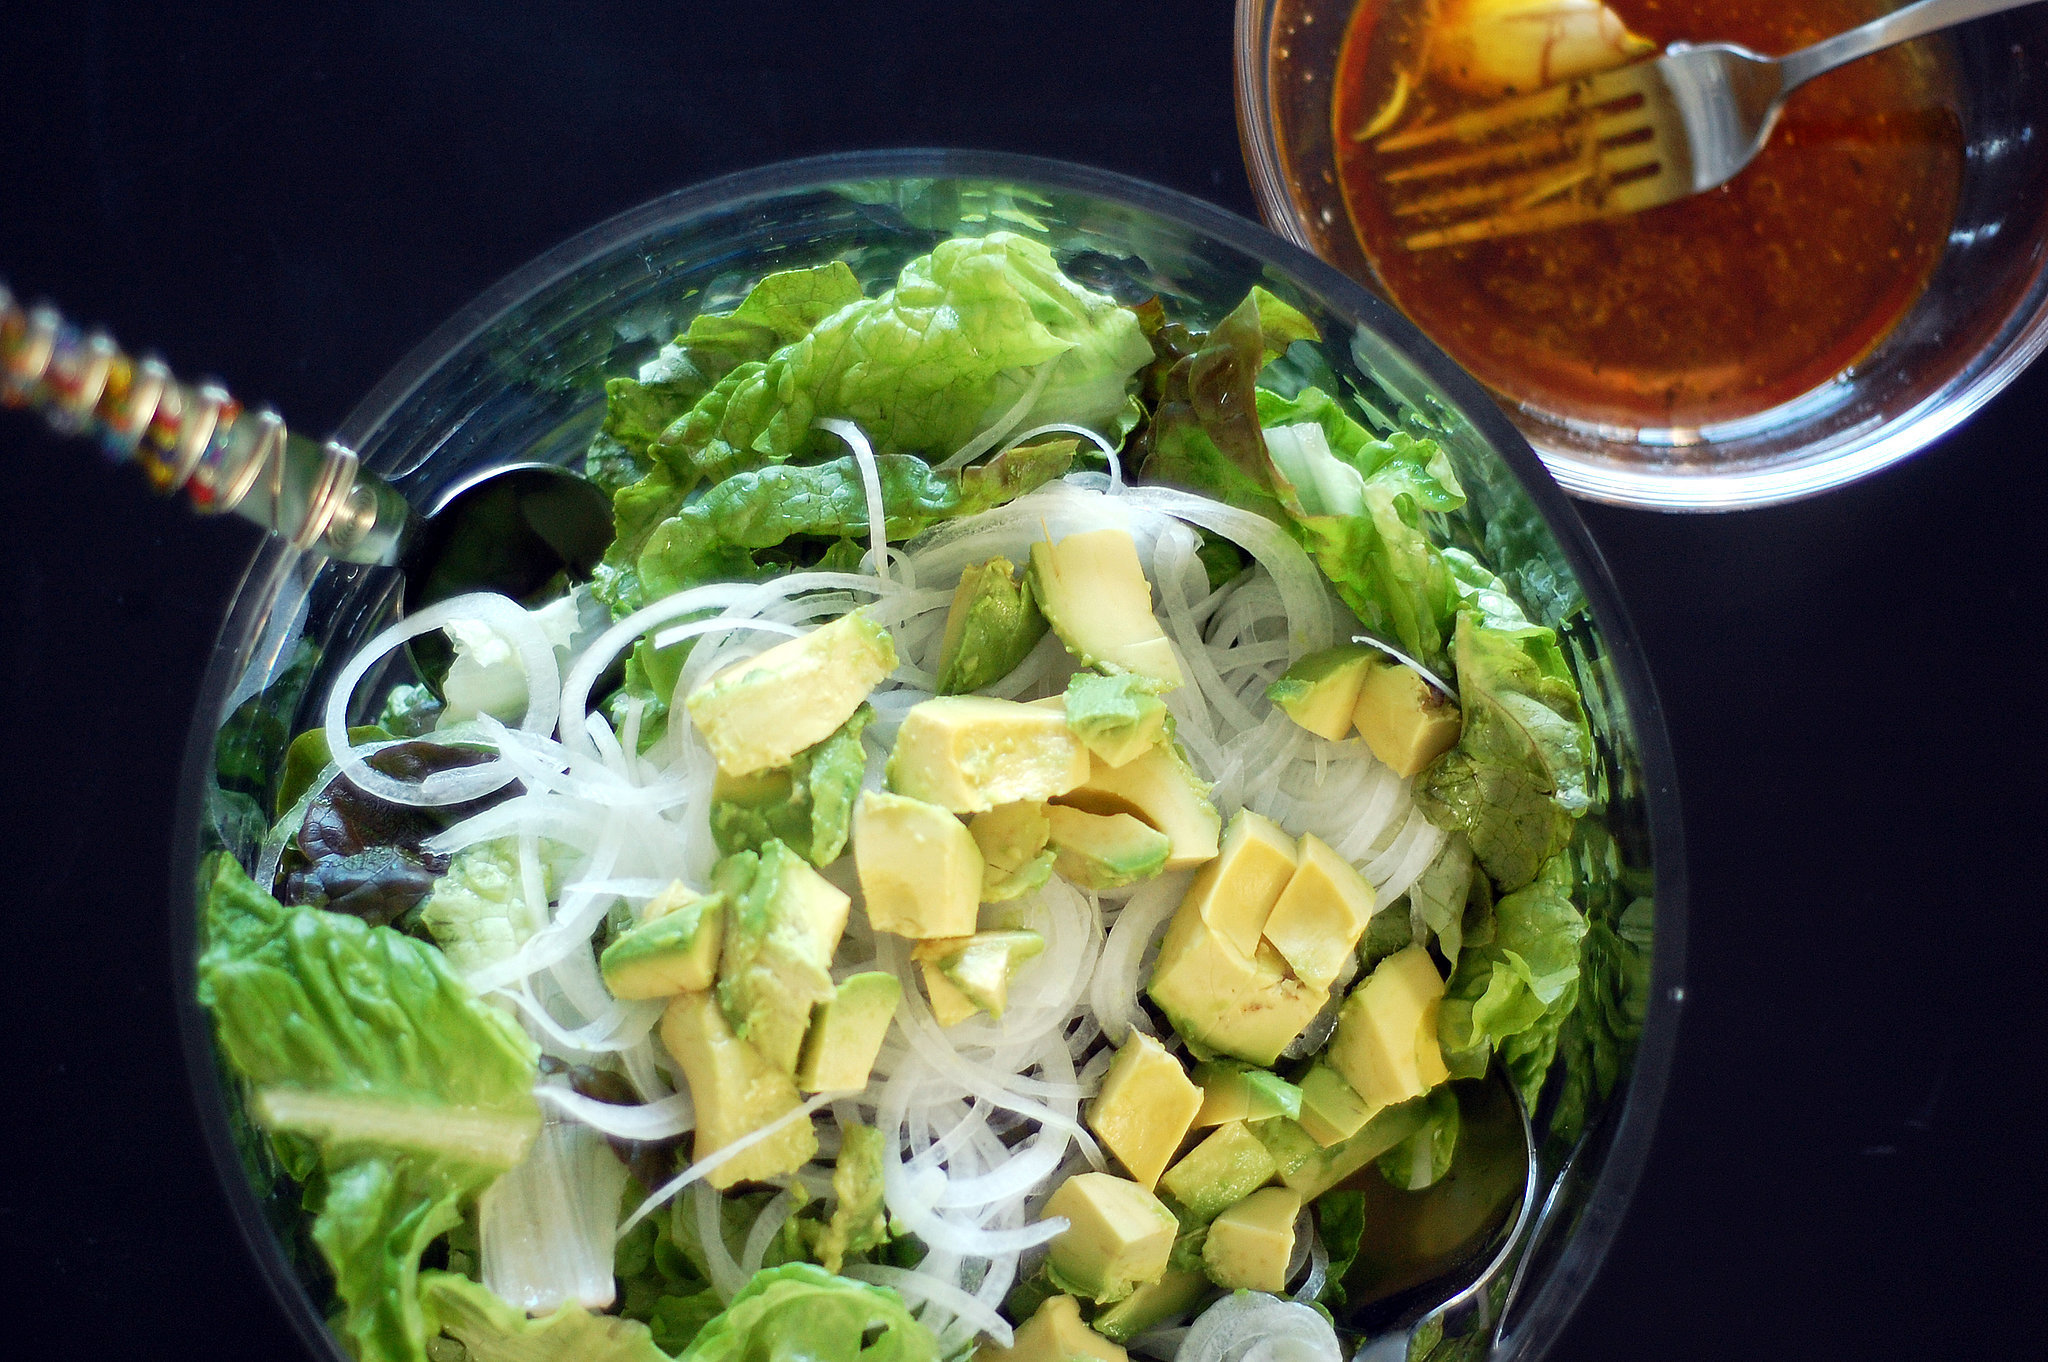 Green Salad With Red Wine Vinegar | POPSUGAR Food